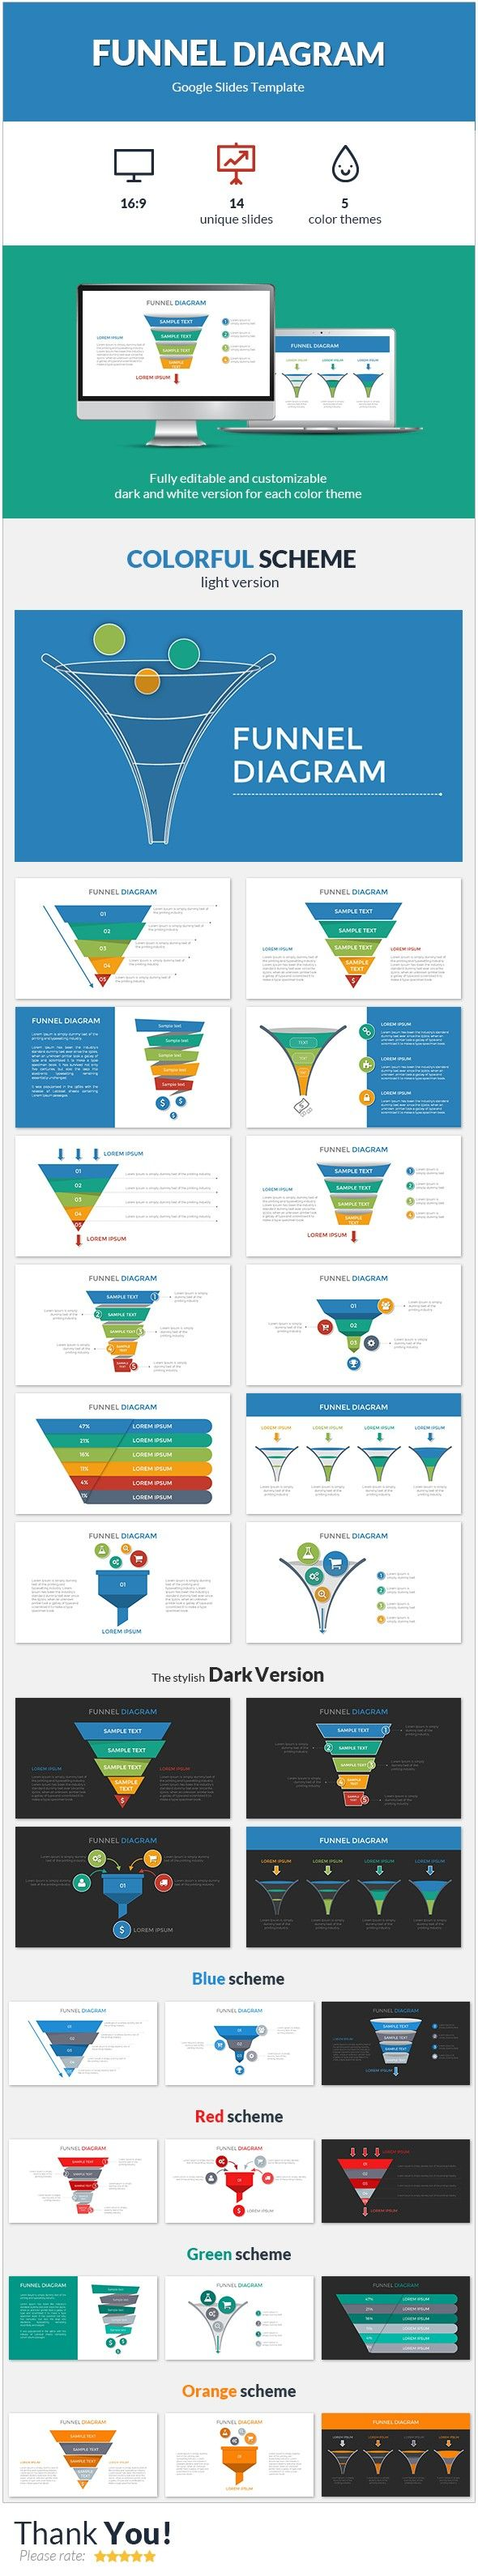 46 best PowerPoint Funnels images on Pinterest